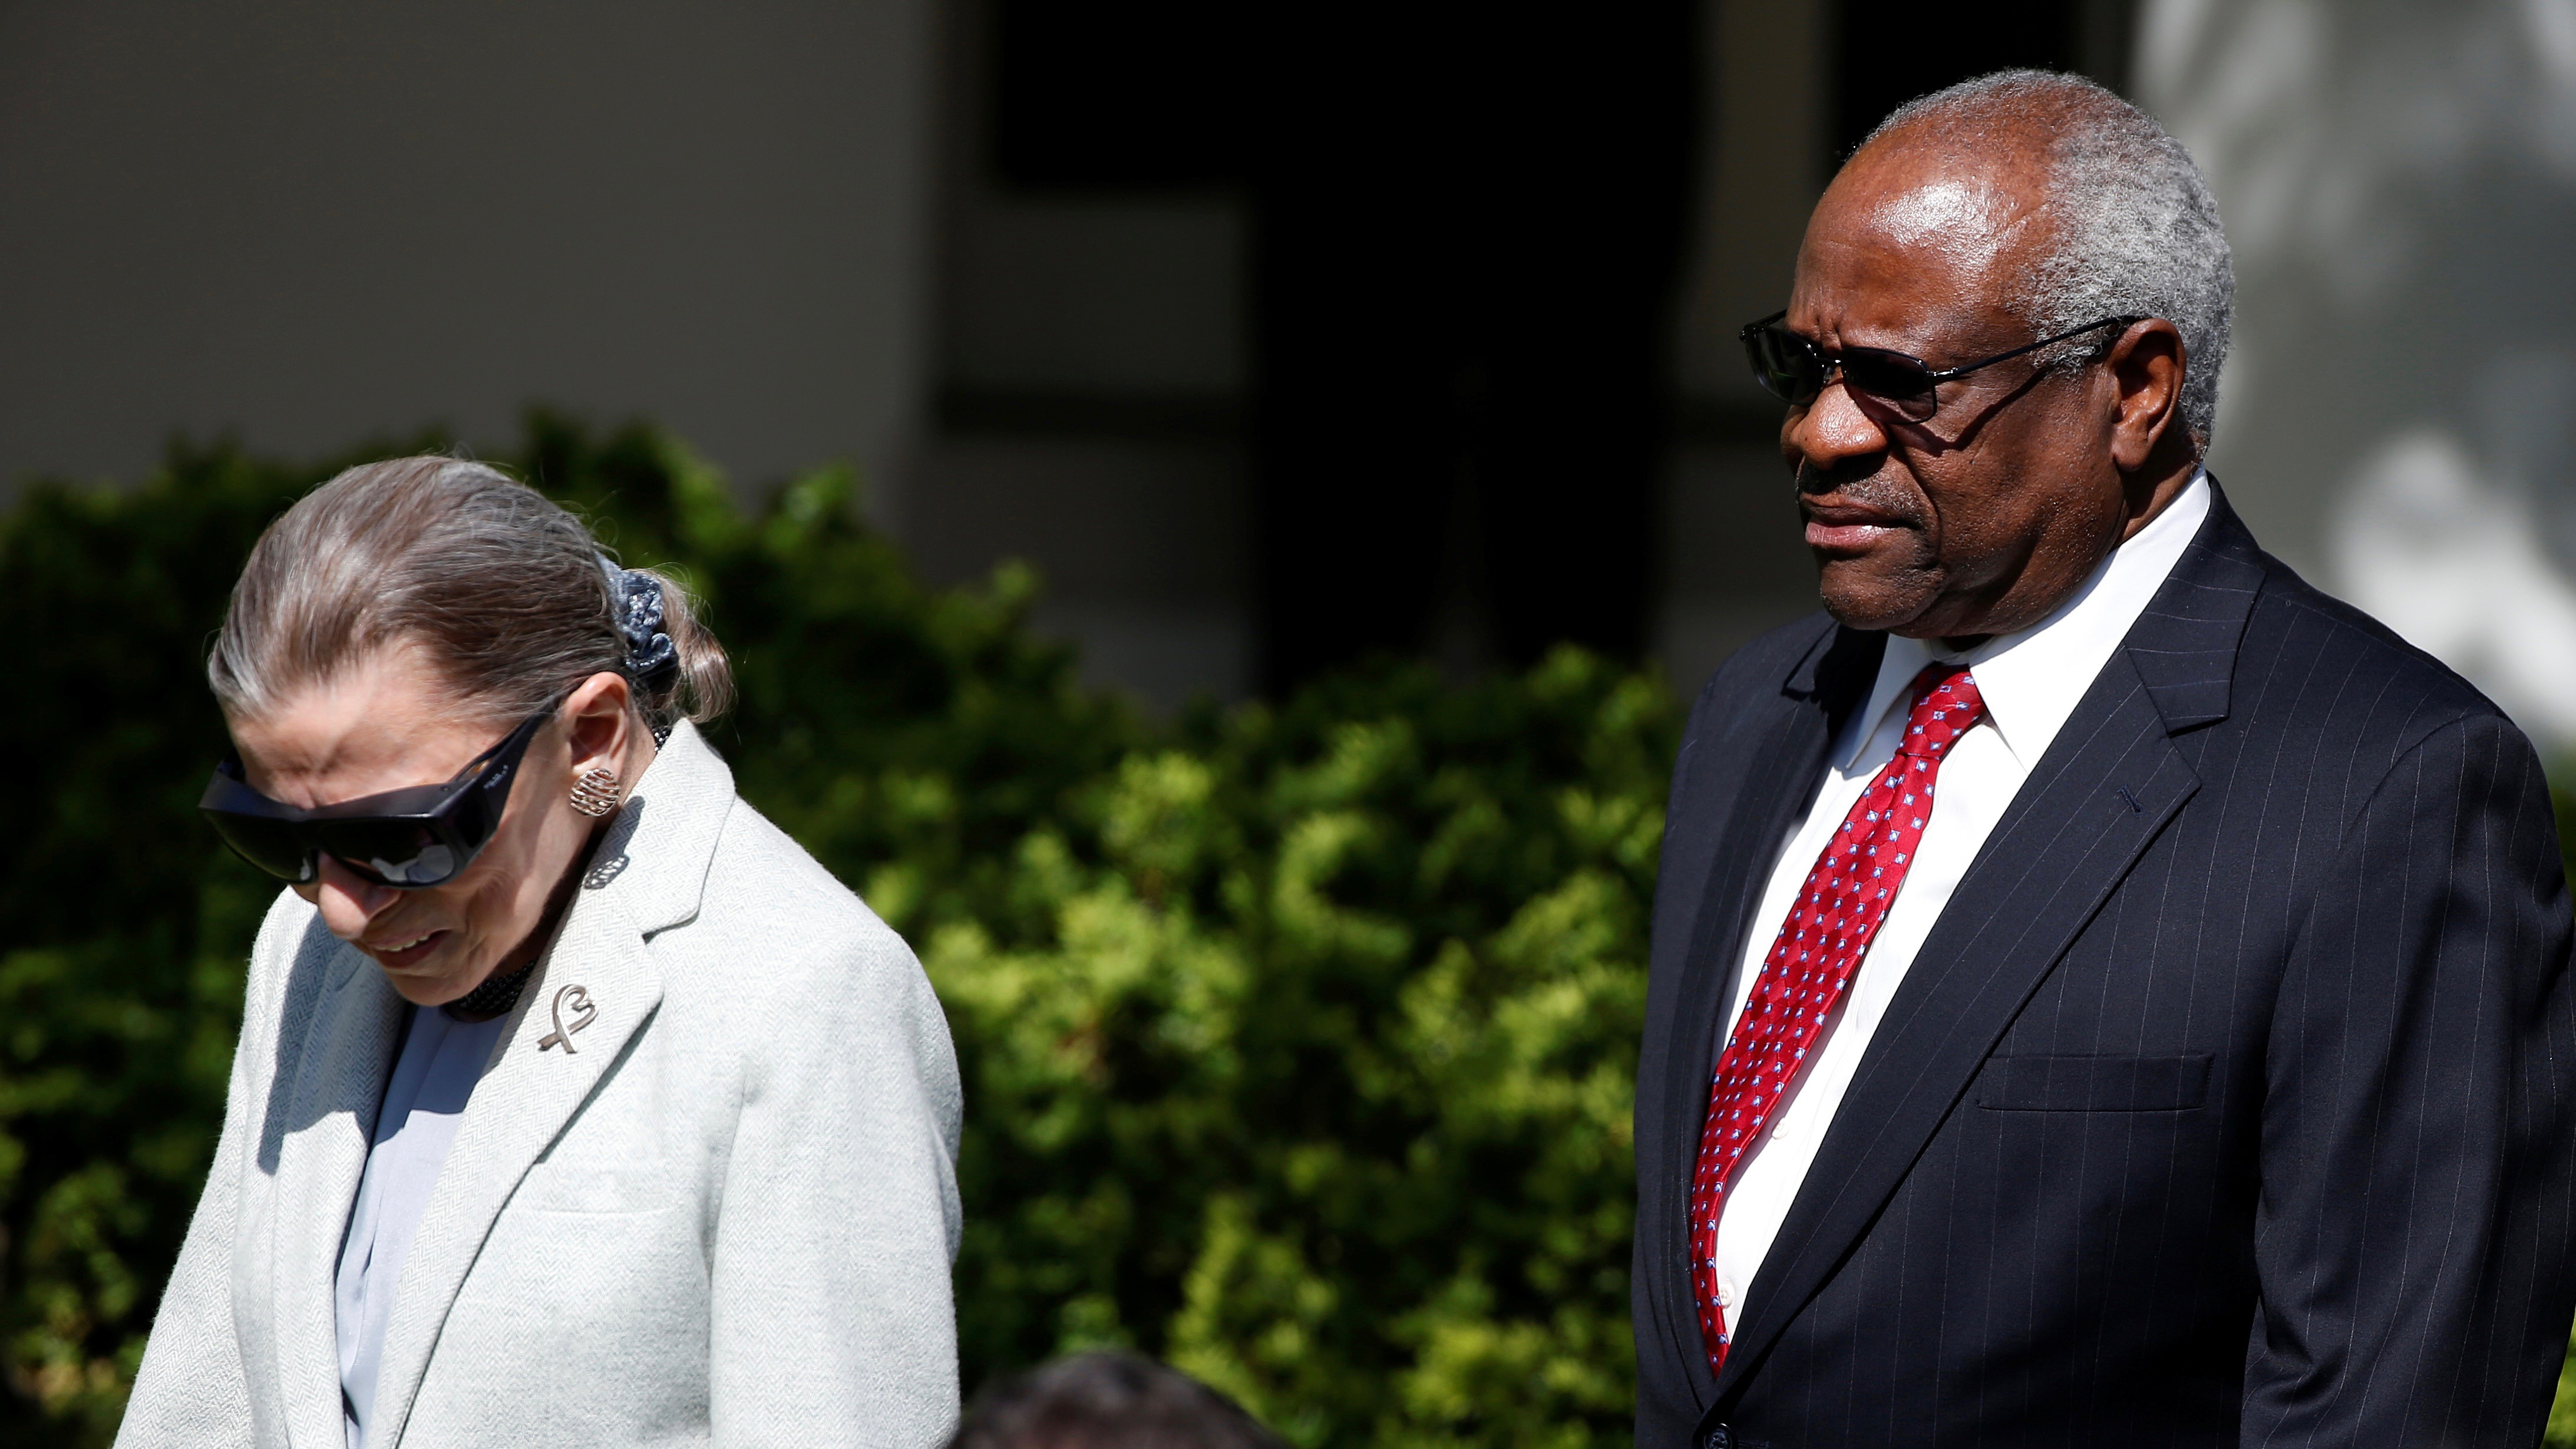 Supreme Court justices Ruth Bader Ginsburg and Clarence Thomas.